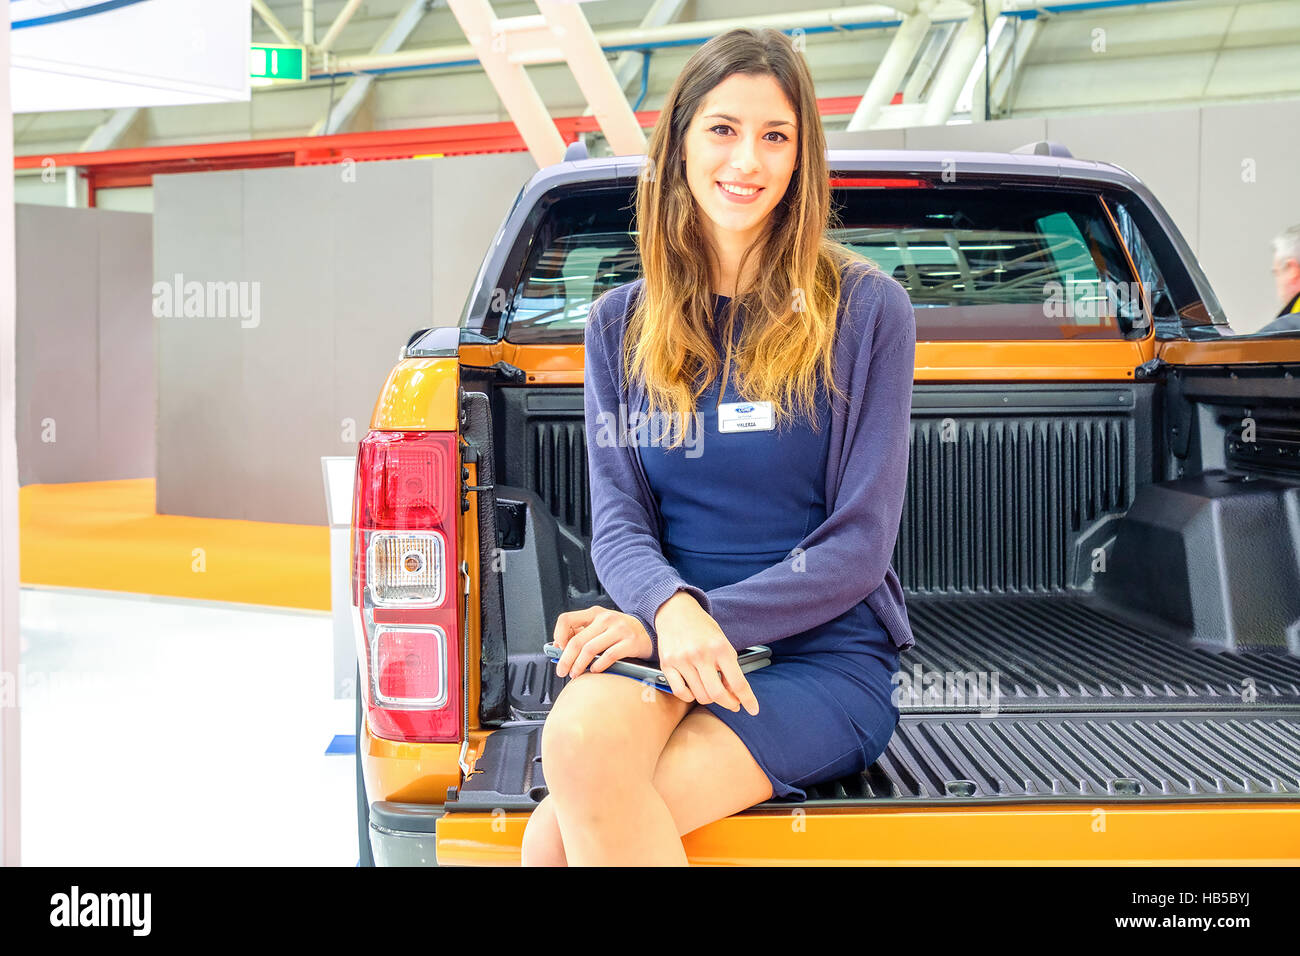 Bologna, Italy, Dec 03 2016 - a model sit in the back of an orange  Ford Ranger Wildtruck pickup during the Motorshow - Stock Image